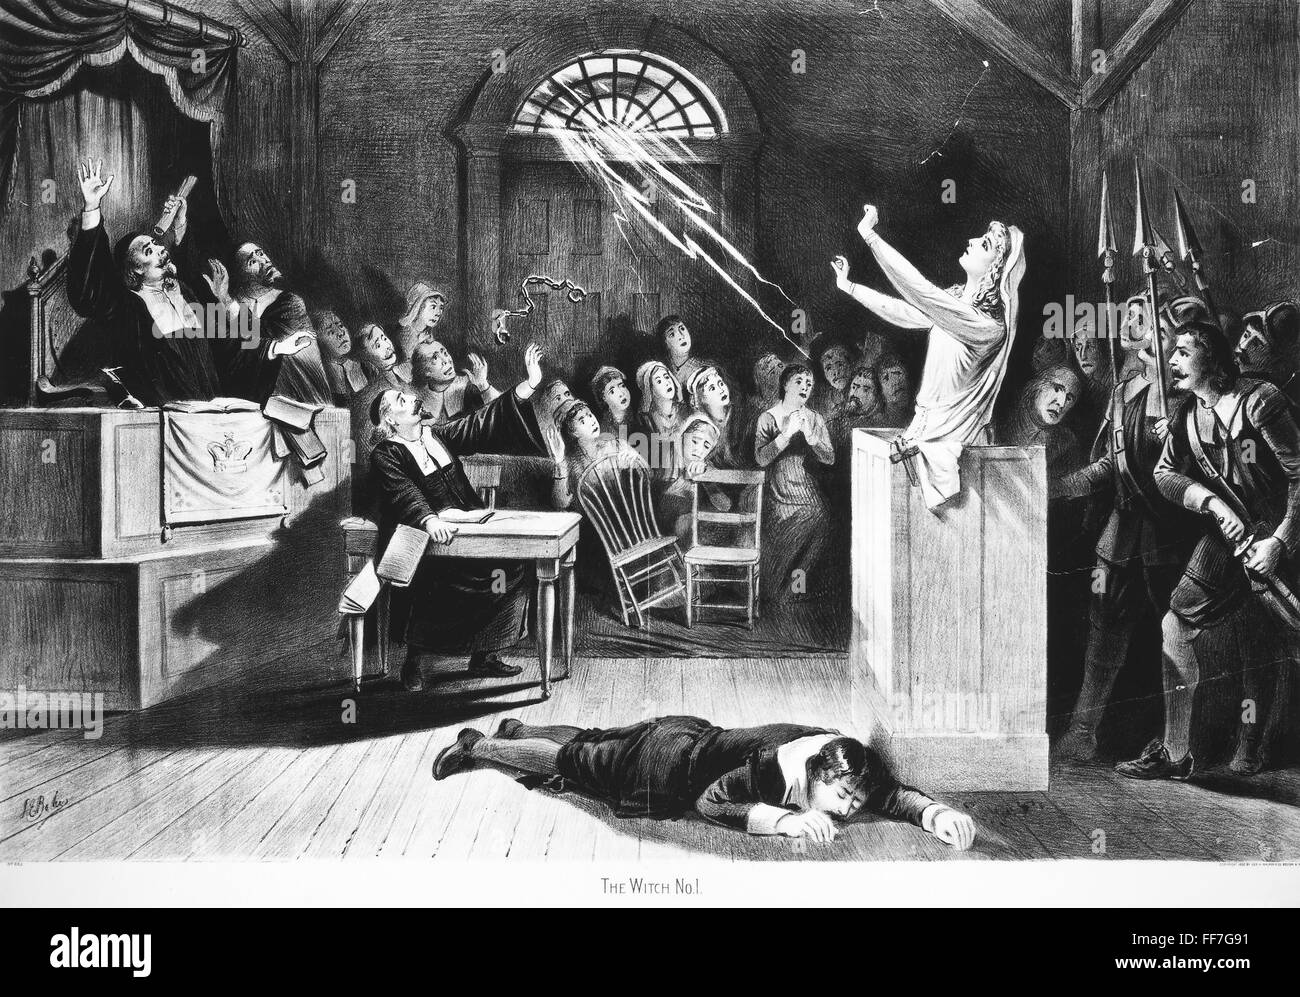 SALEM WITCH TRIAL, 1692. /nA witch trial at Salem, Massachusetts, in 1692. Lithograph, American, 1892.Stock Photo